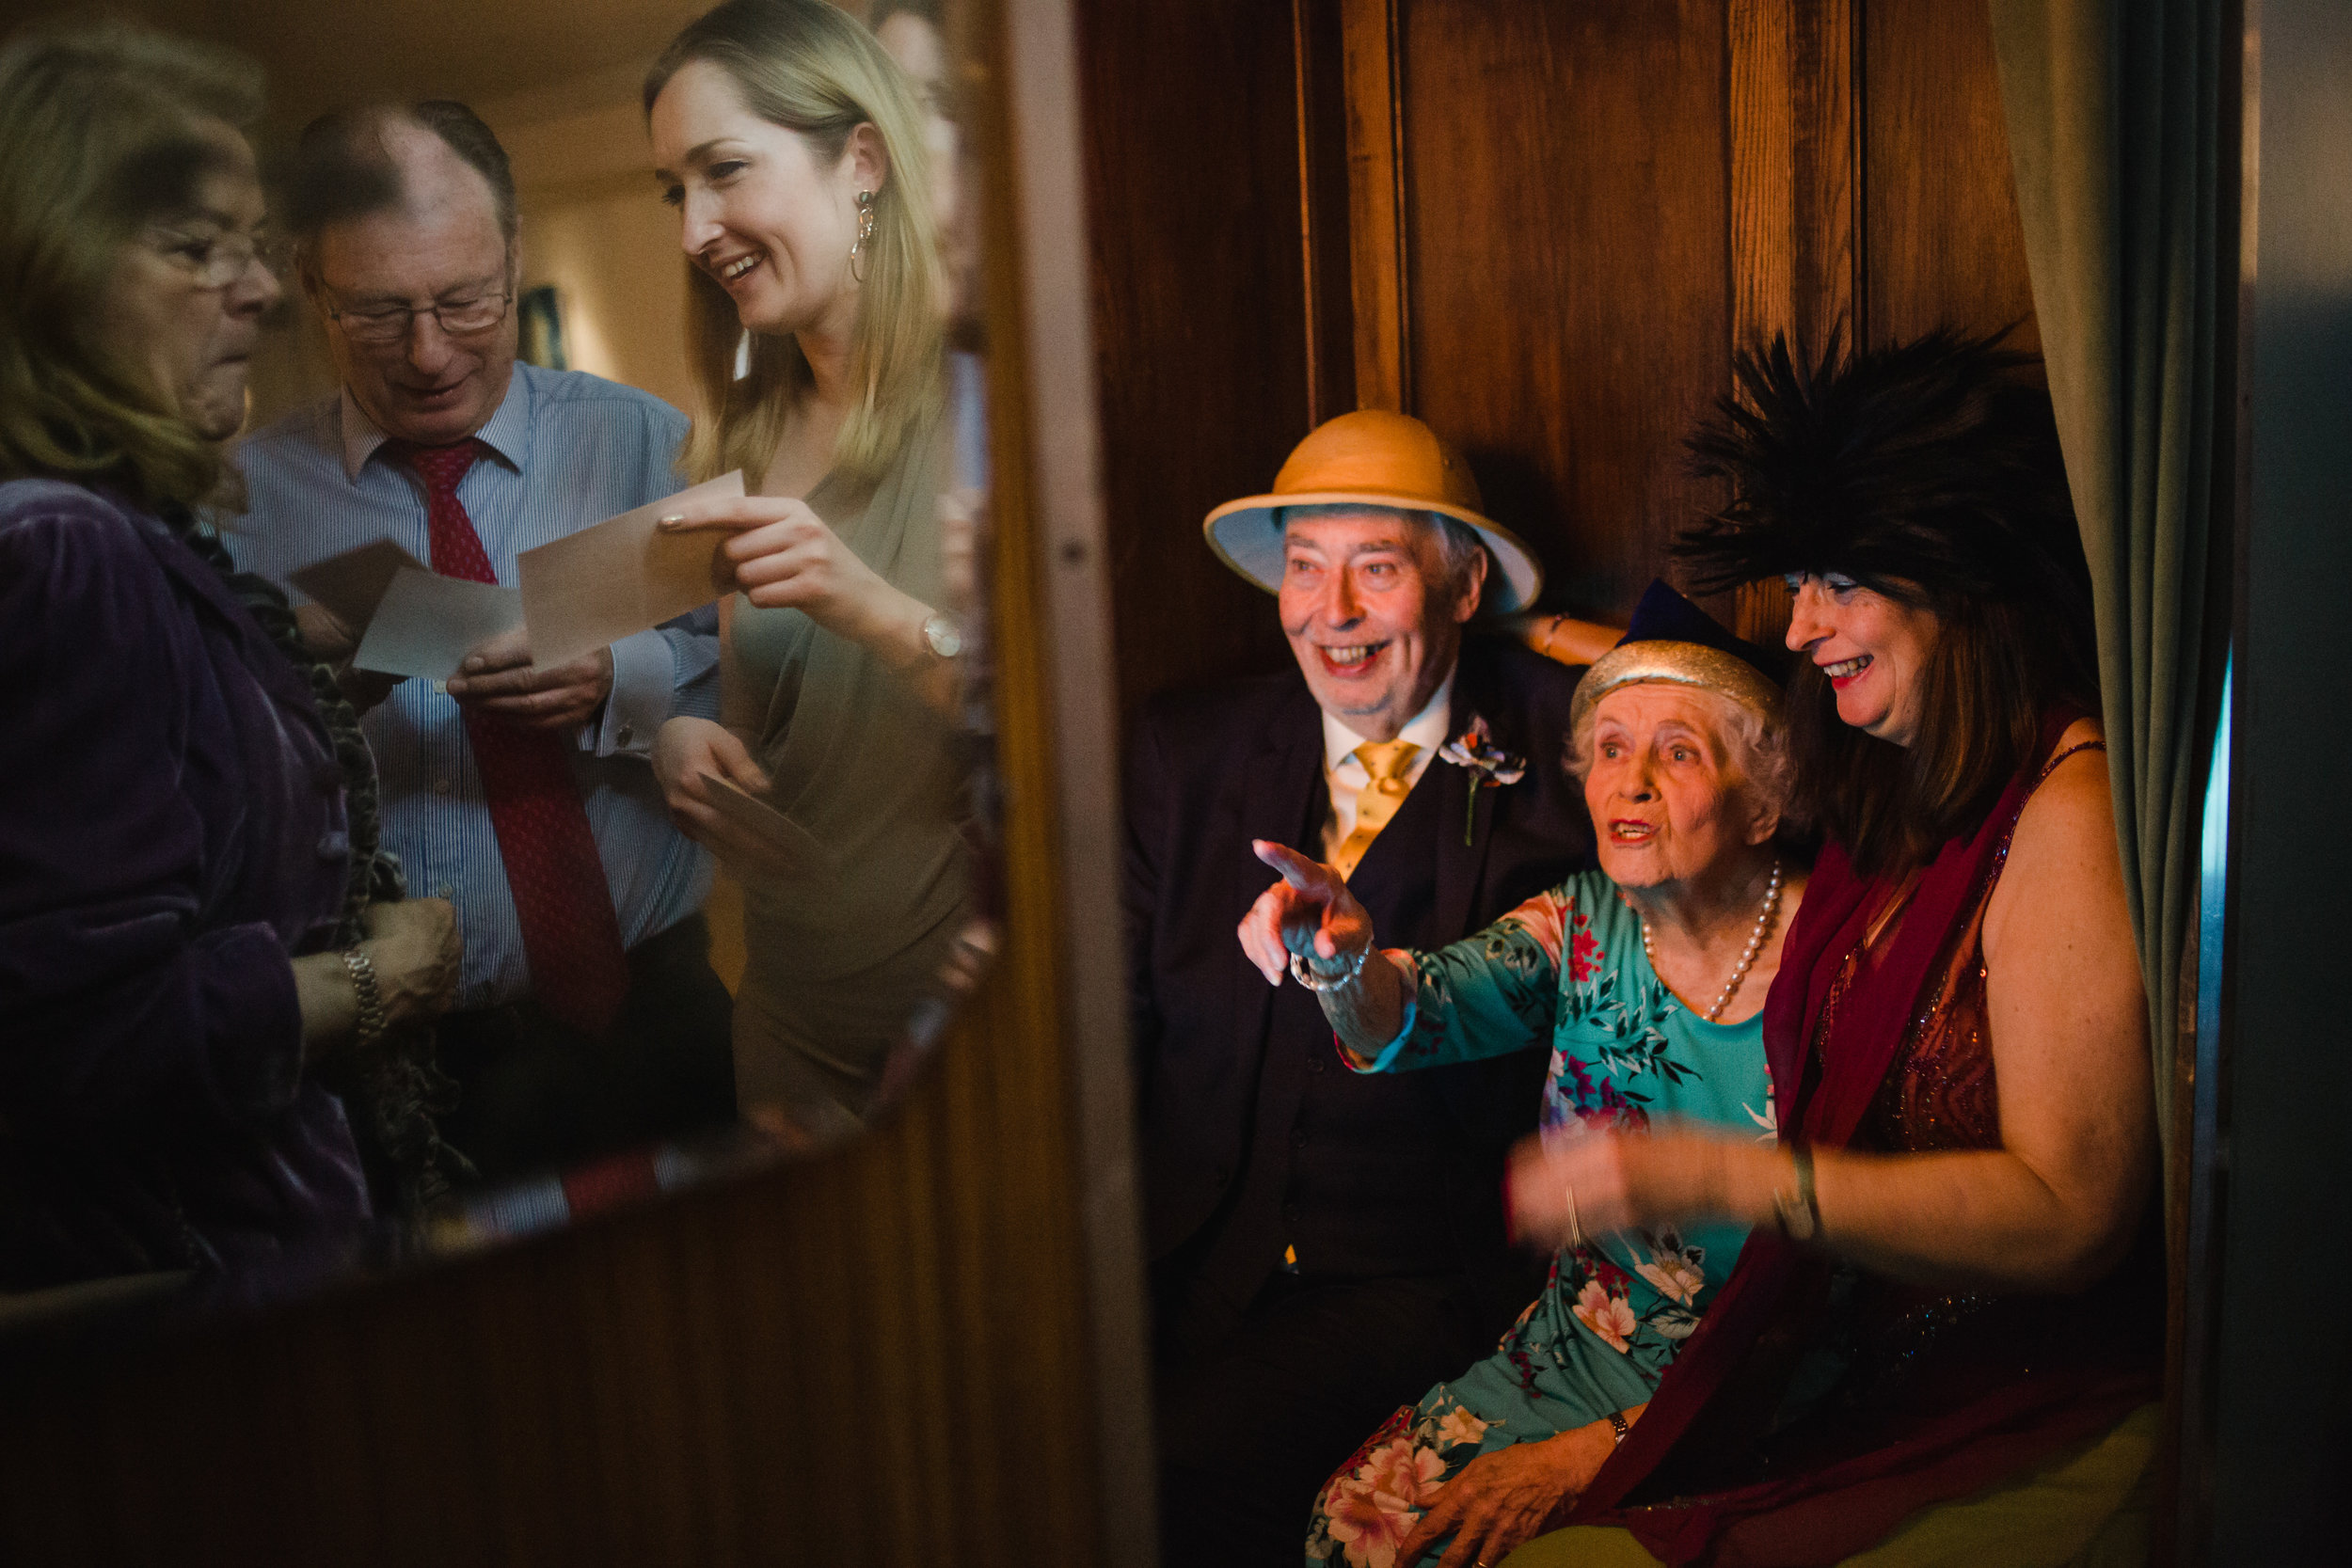 older wedding guests have a photo in a photobooth at a wedding bristol